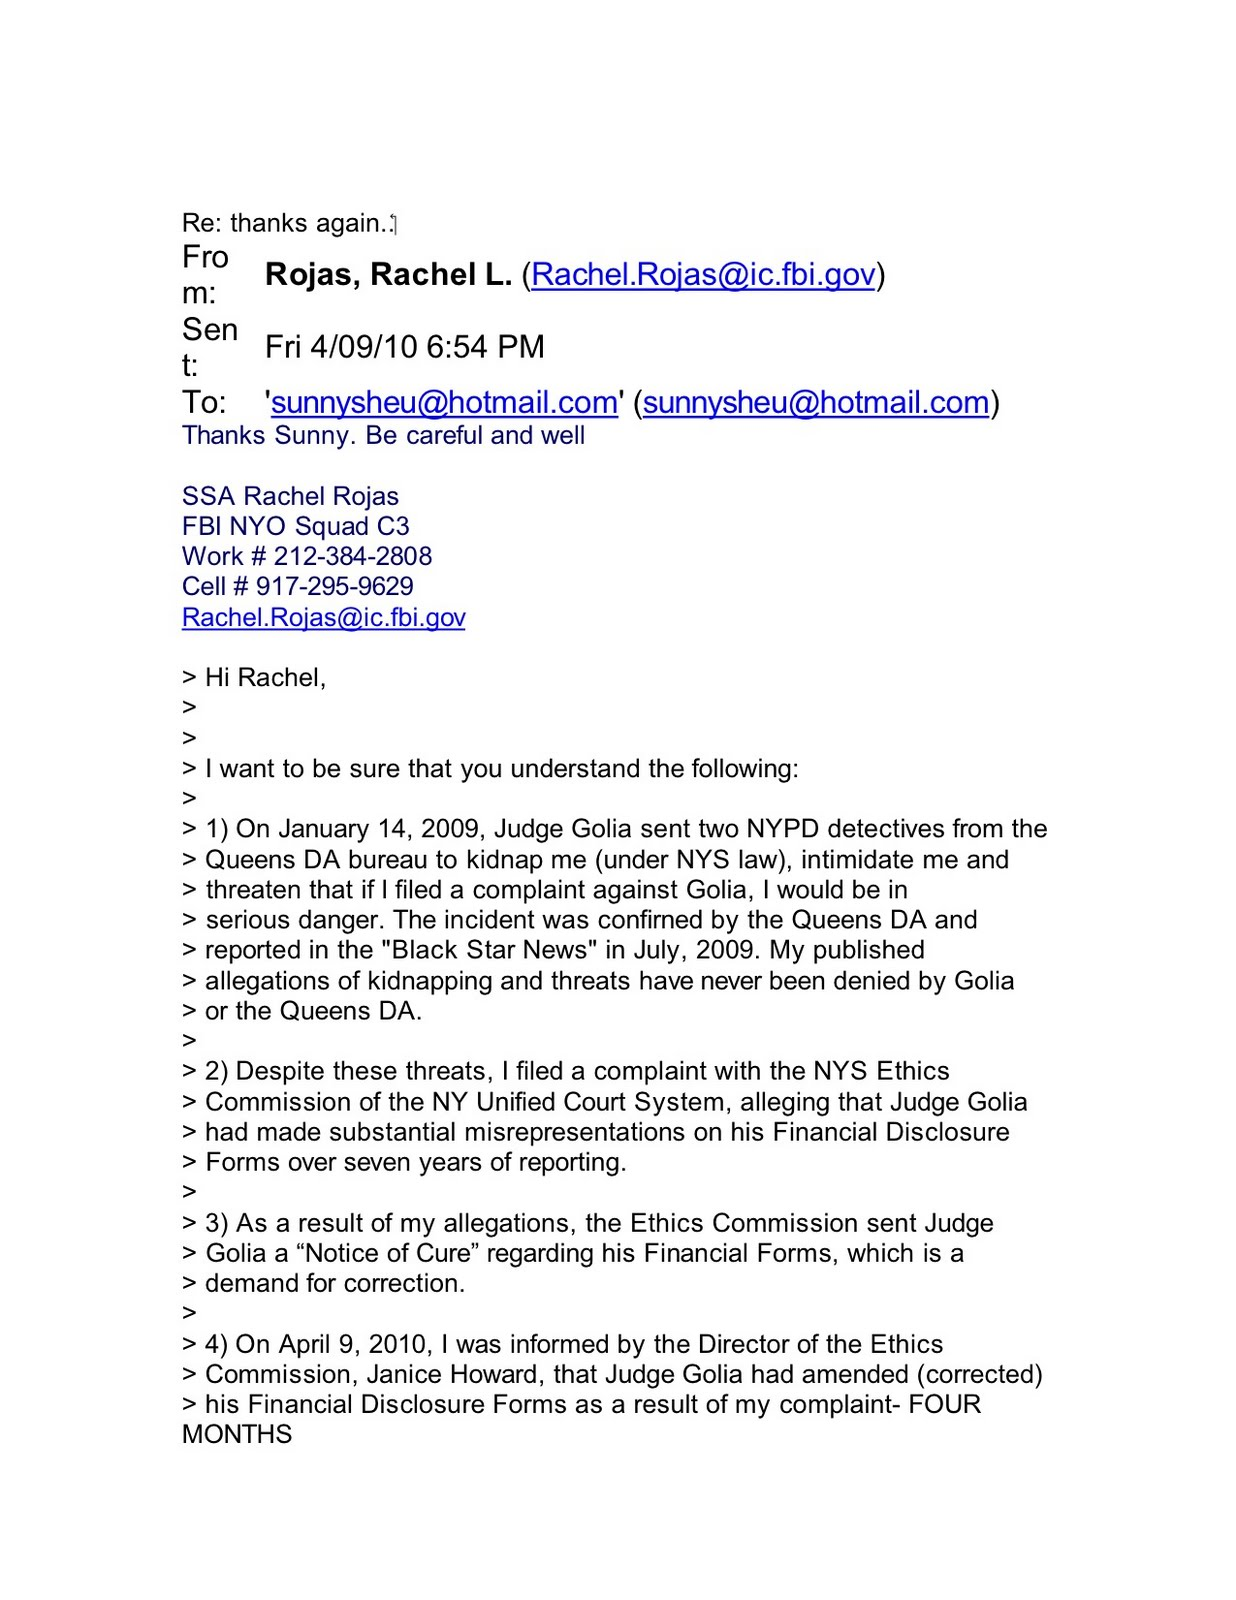 The Murder Of Sunny Sheu June 2011 Letter From Sunny Sheu To FBI Agent  Rachel Rojas